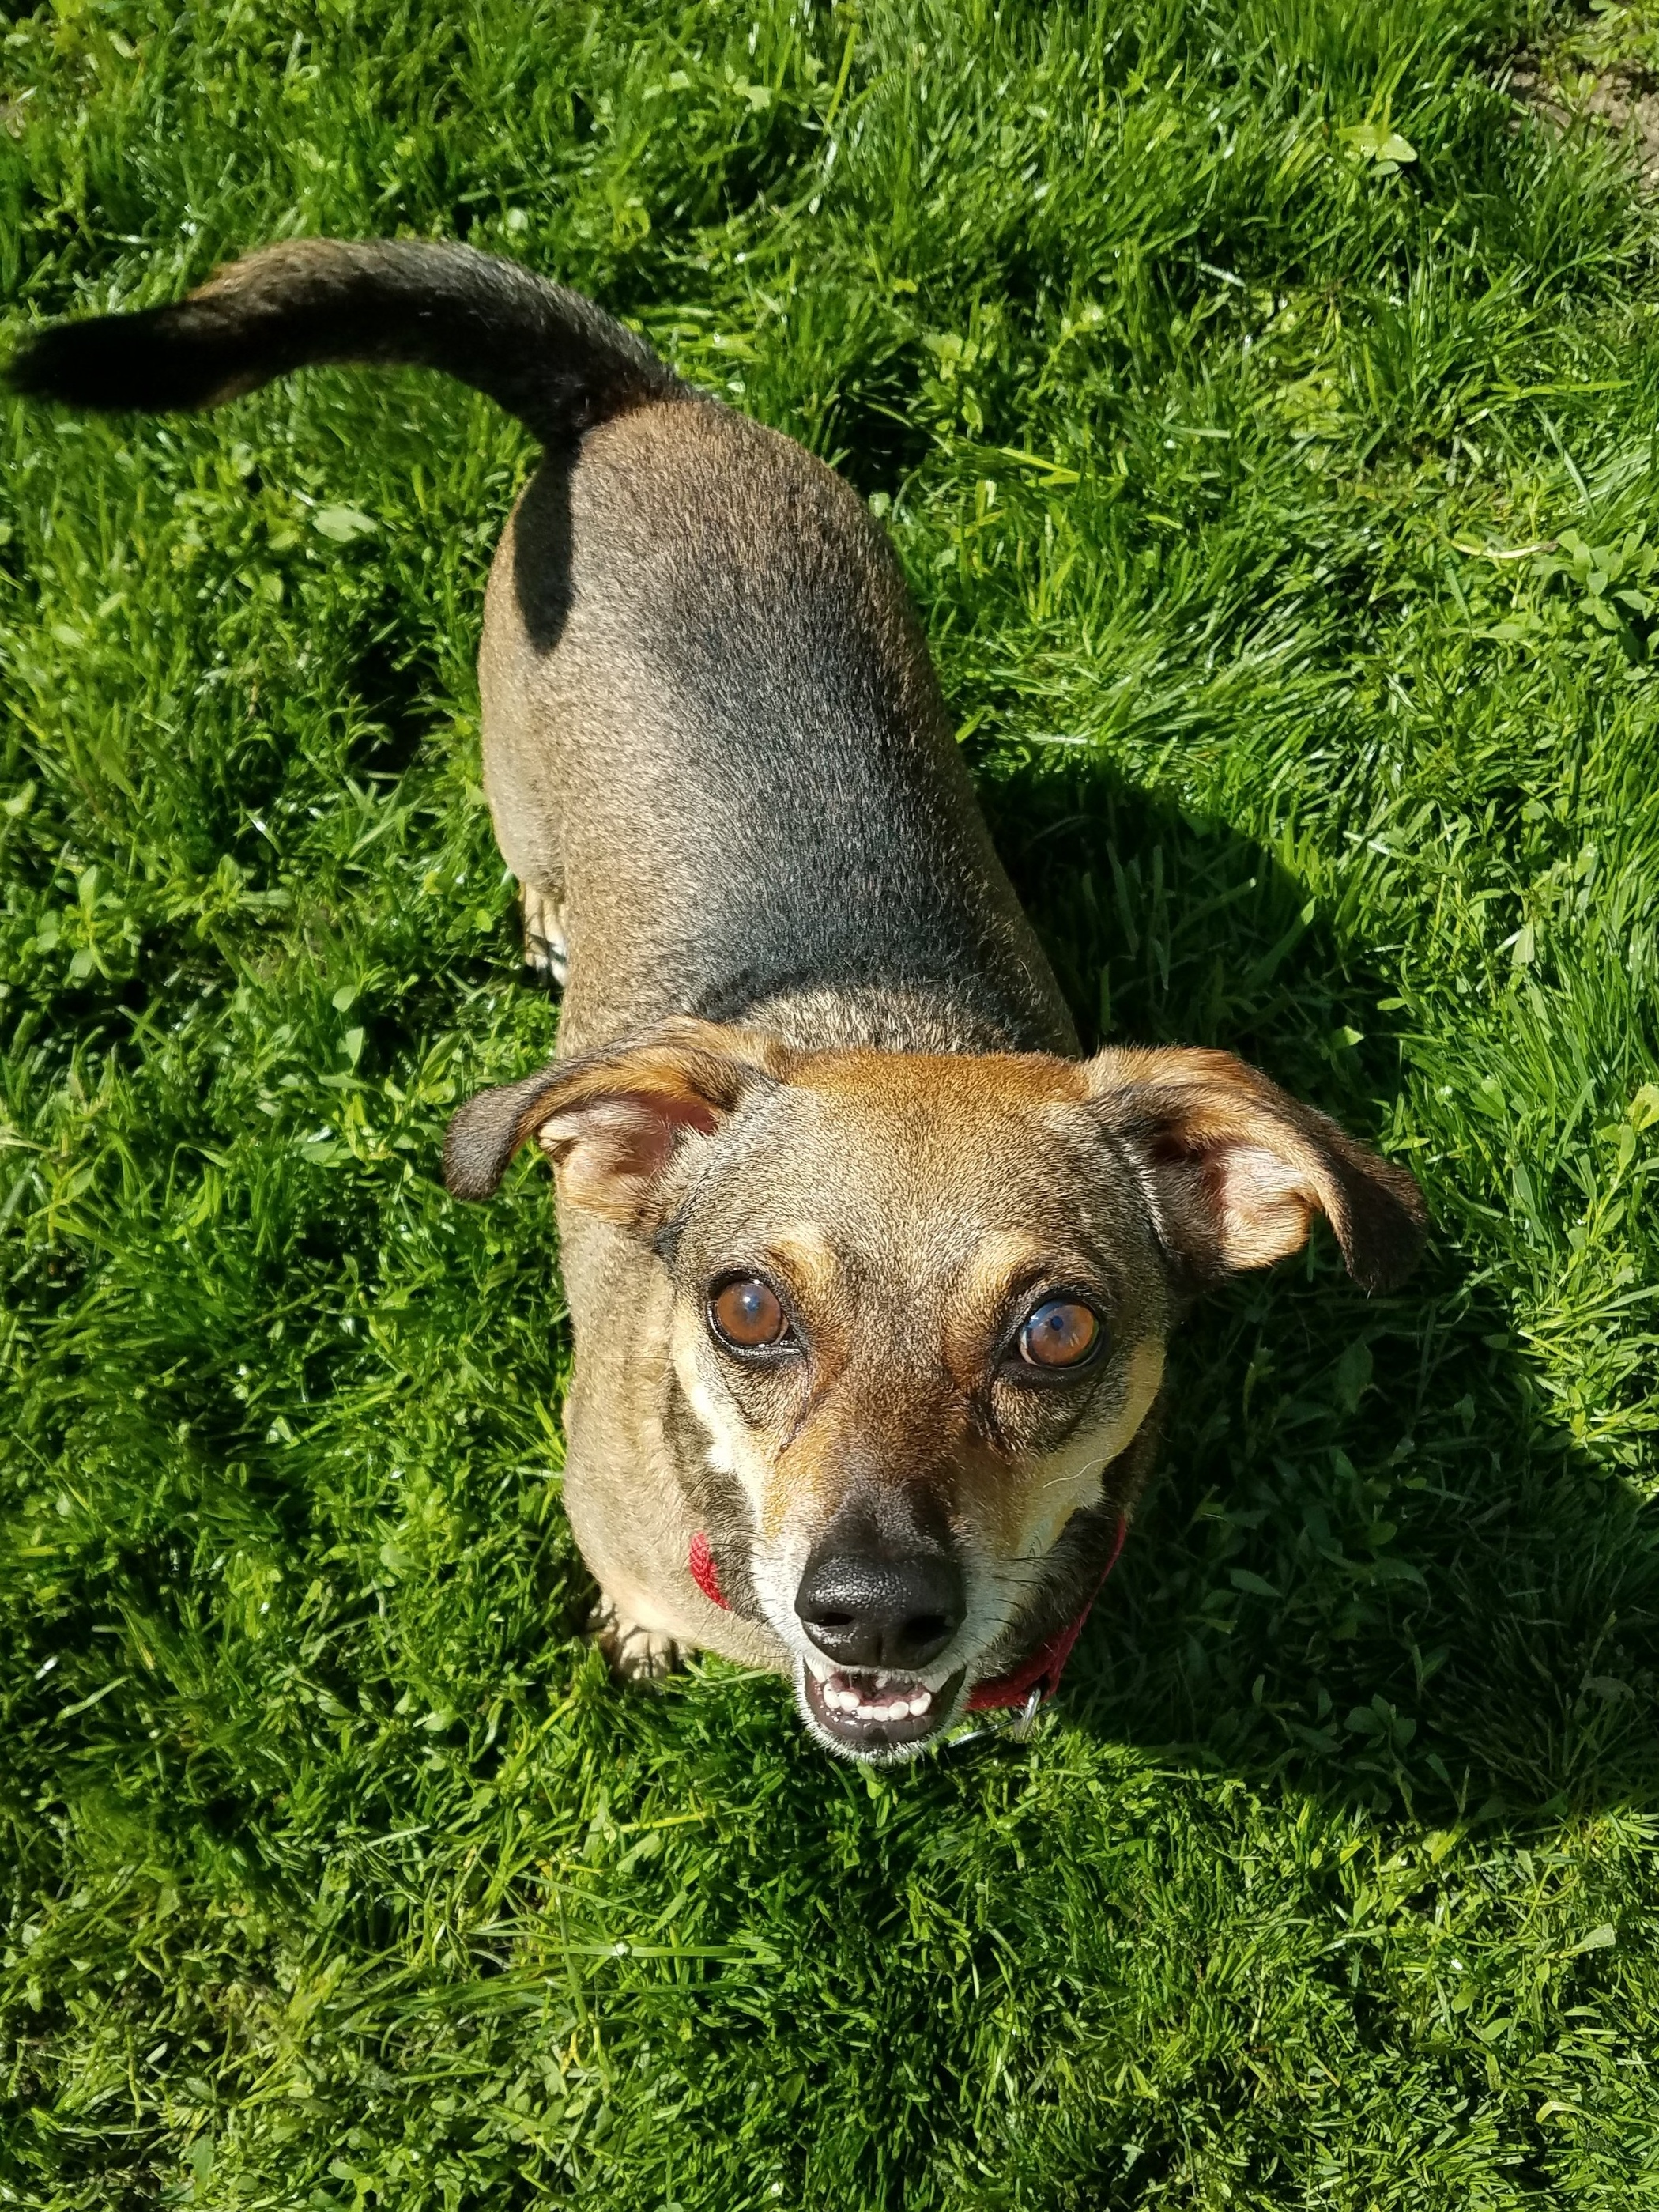 Do you need a little shadow? Barney is just the pup for the job! He bonds quickly and fiercely, and he'll follow you anywhere. Barney is good with calm older kids, cats, and other dogs. He is a 7 year old Dachshund/Chihuahua mix who is already house trained! Barney loves going for walks, snuggling, and being with his people. He is neutered, microchipped, and up to date on all vaccines!  For more information or to adopt Barney apply at  www.rescueofhope.com/adopt